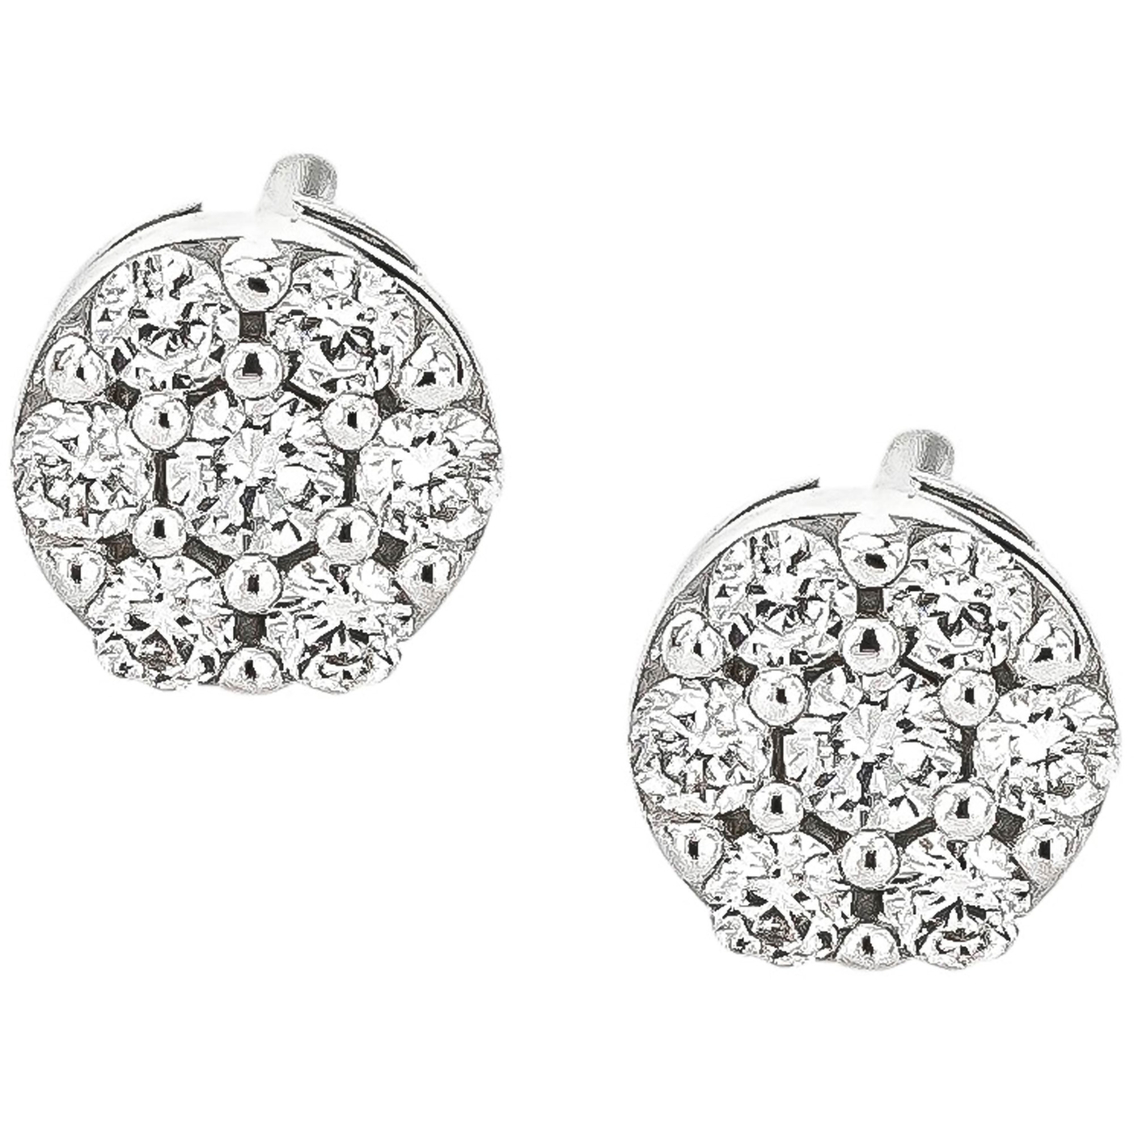 10k White Gold 1 10 Ctw Diamond Stud Earrings